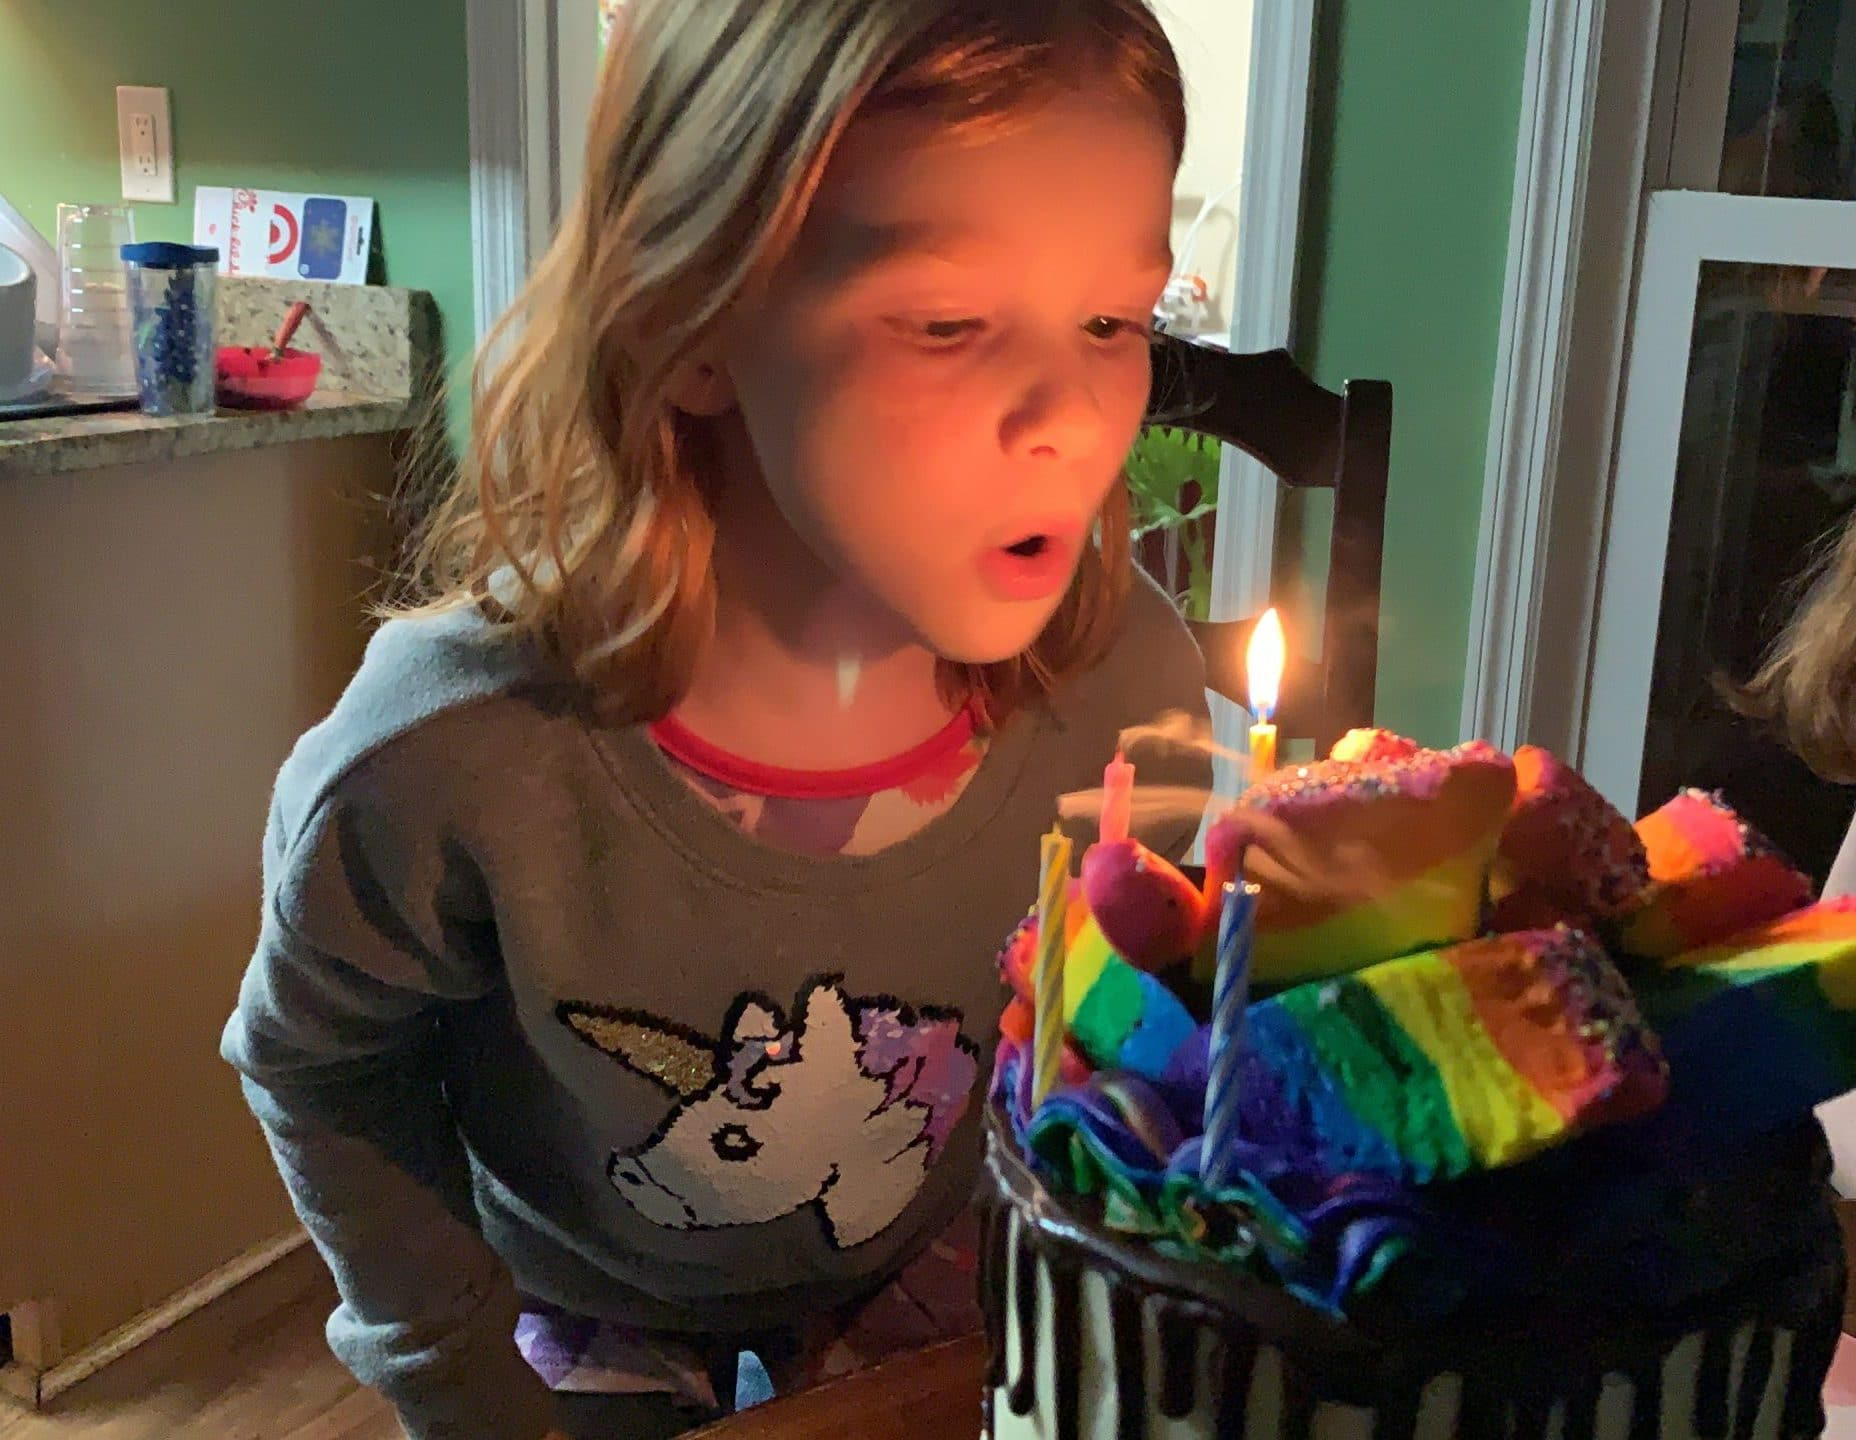 Happy 7th birthday B with candles and cake